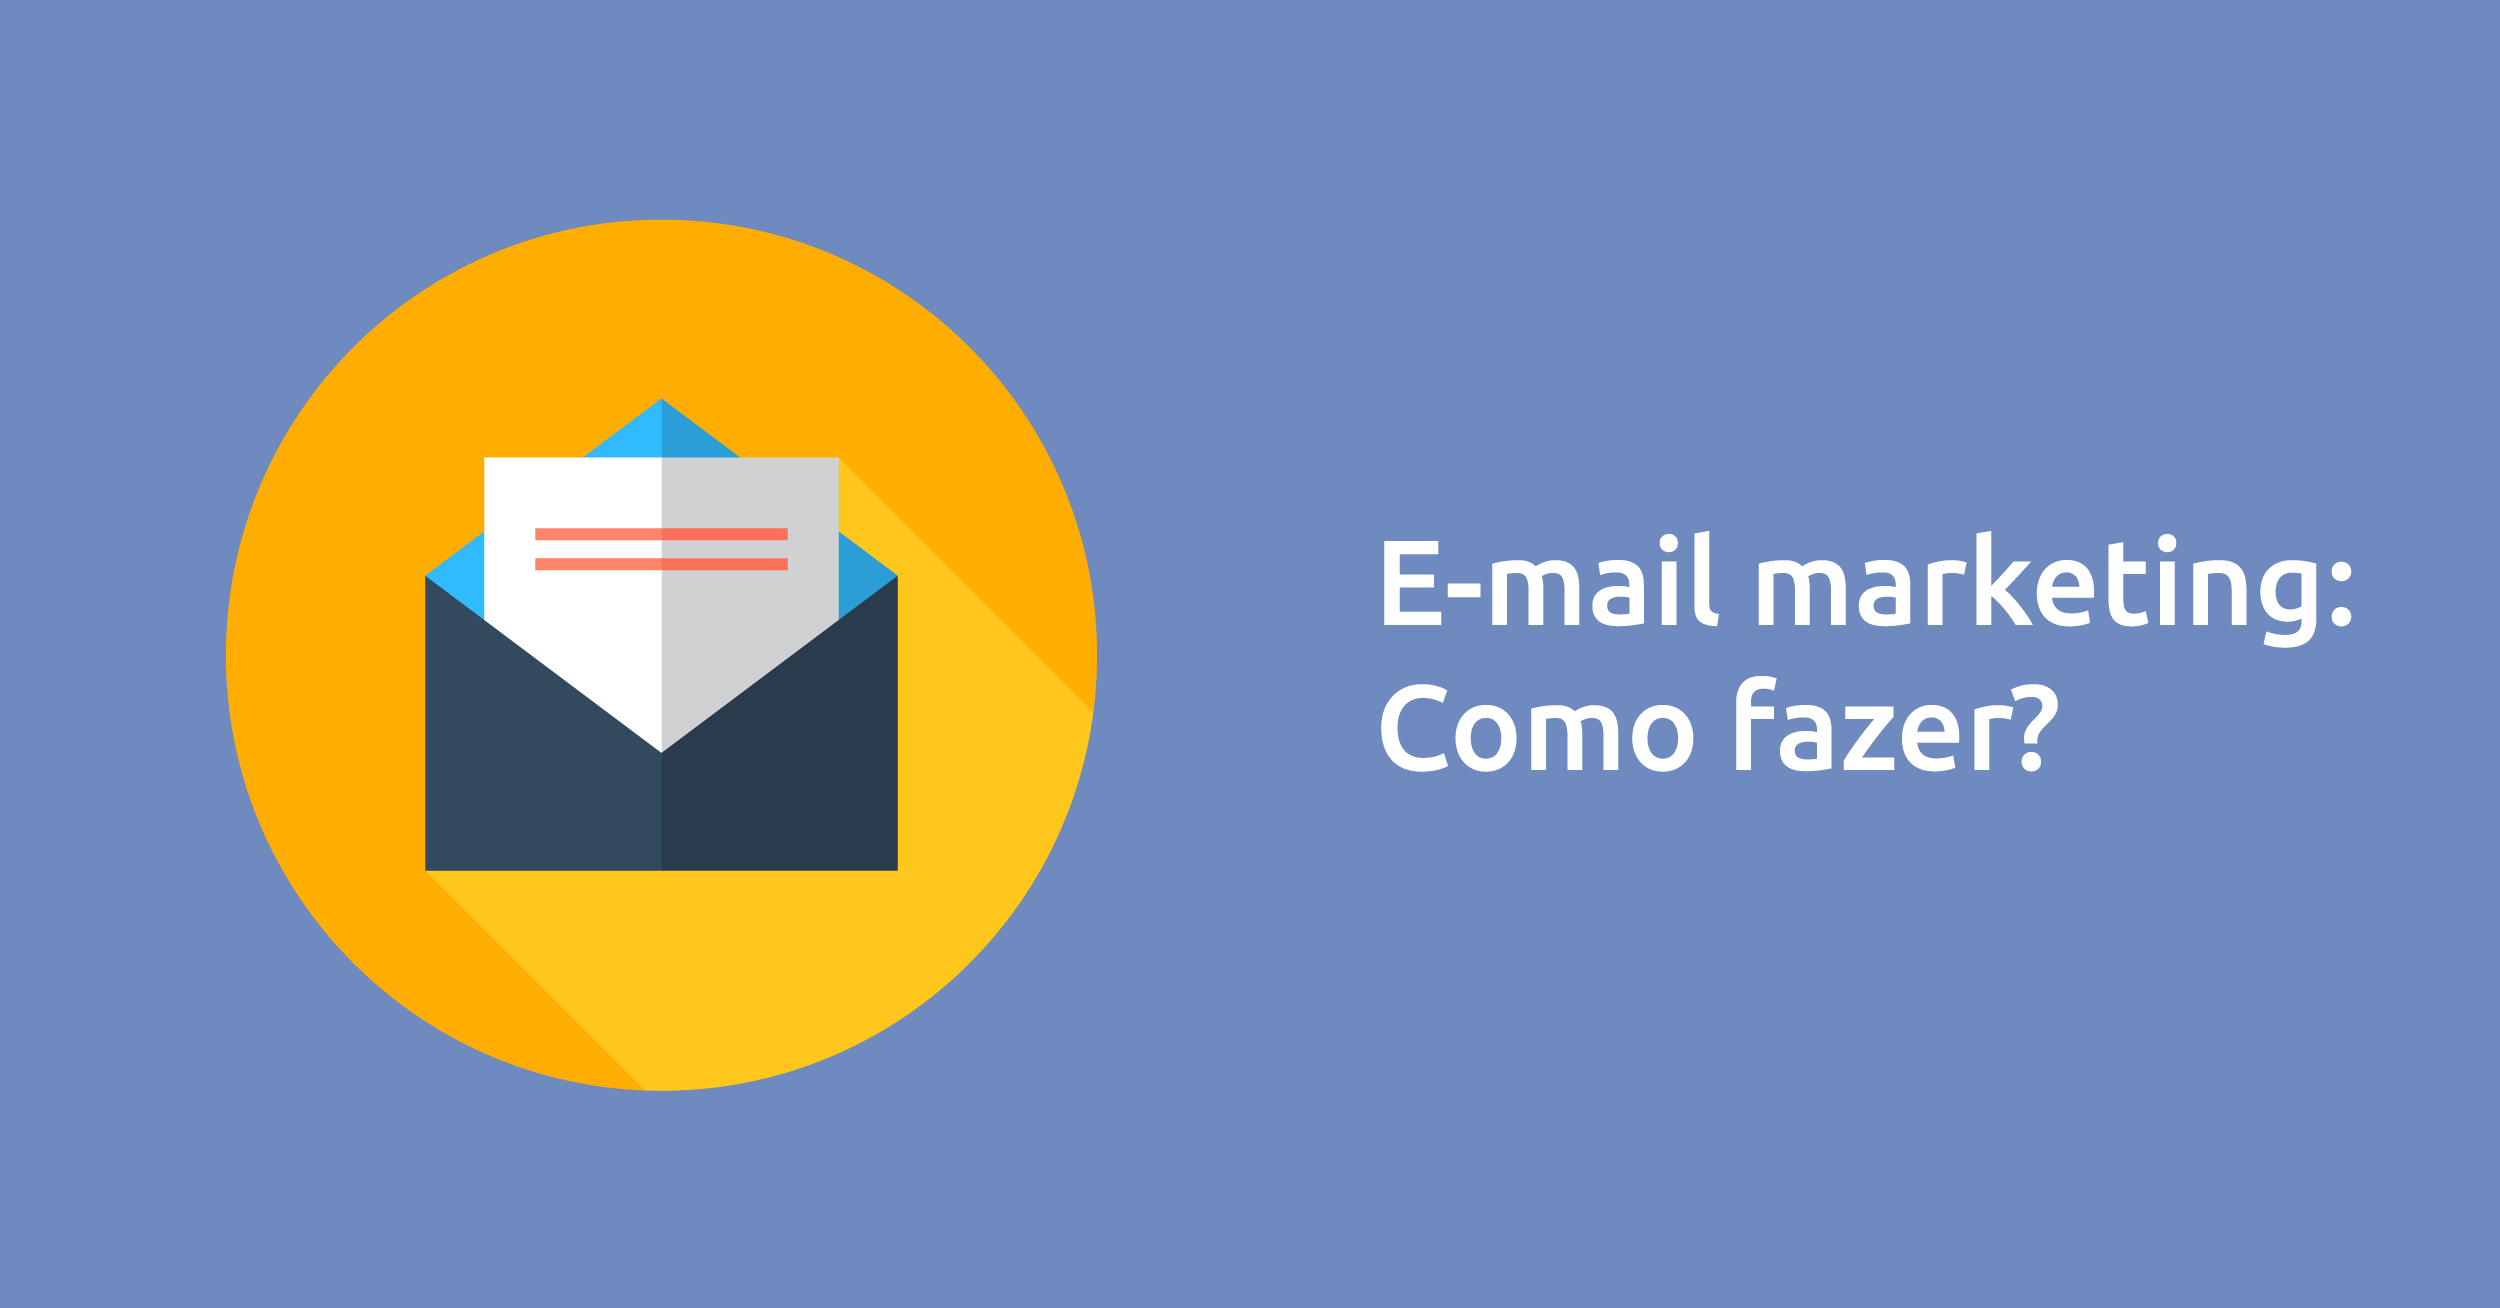 E-mail marketing: como fazer?